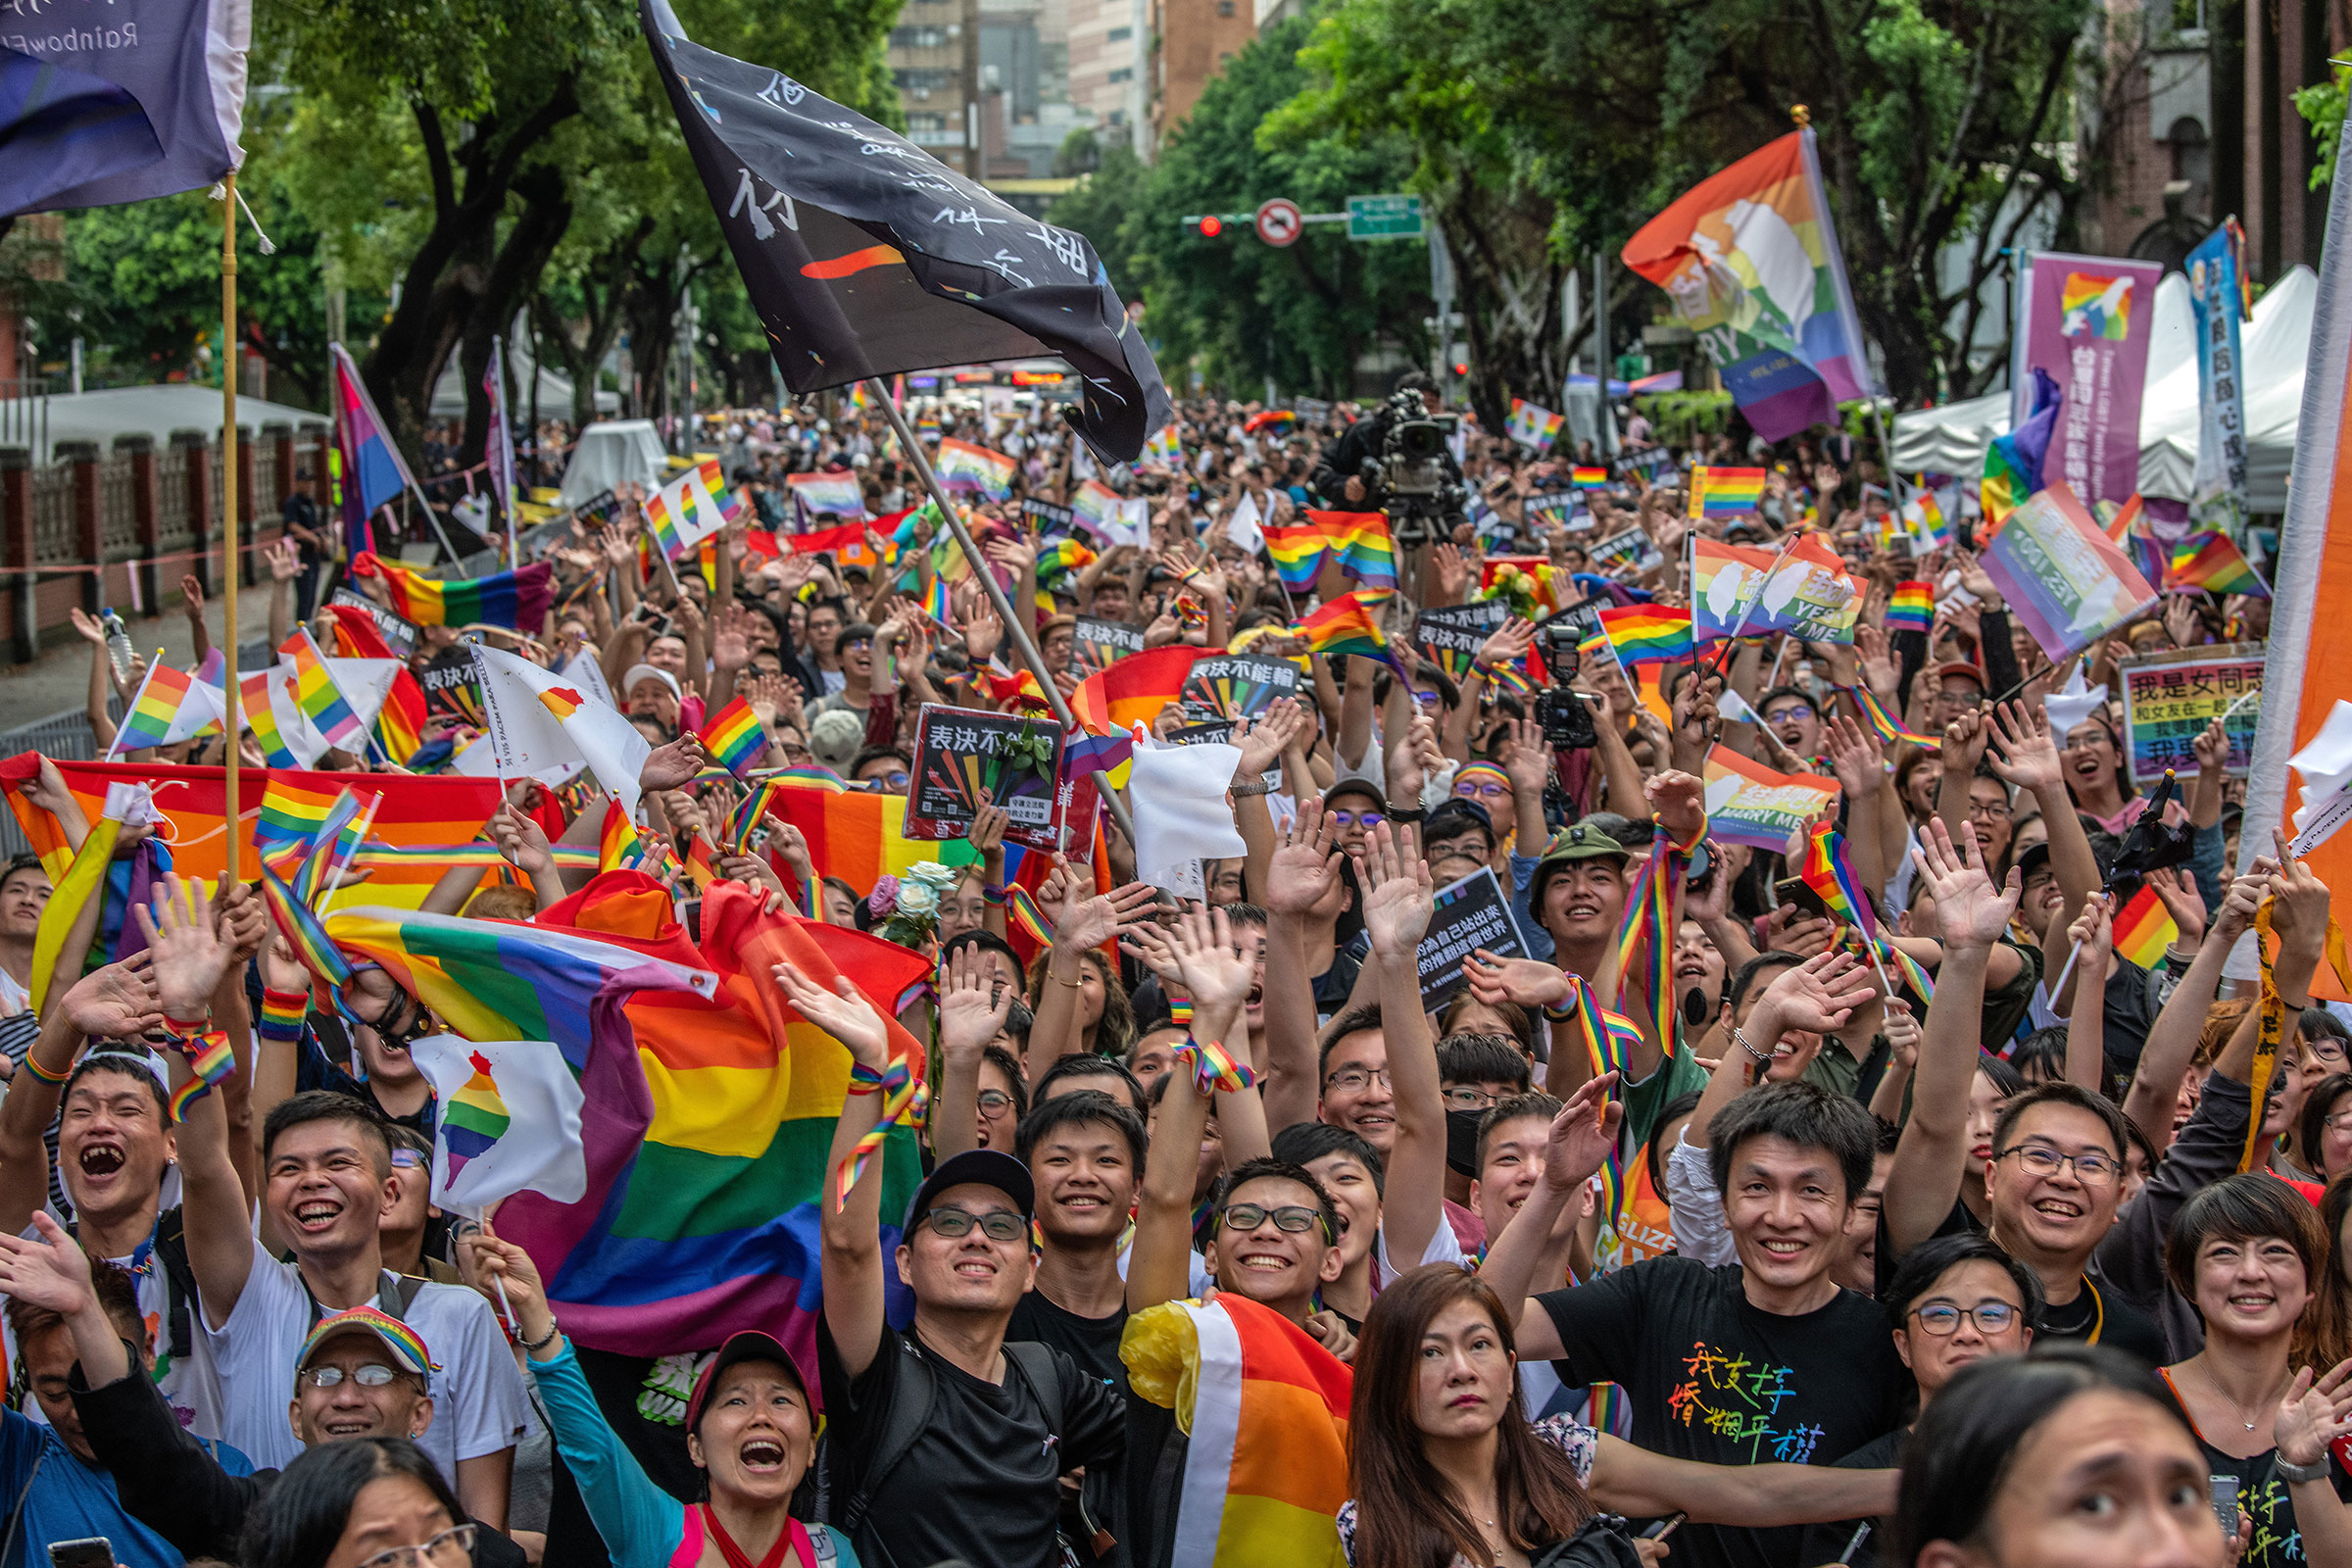 People celebrate after Taiwan's parliament voted to legalize same-sex marriage on May 17, 2019 in Taipei, Taiwan.